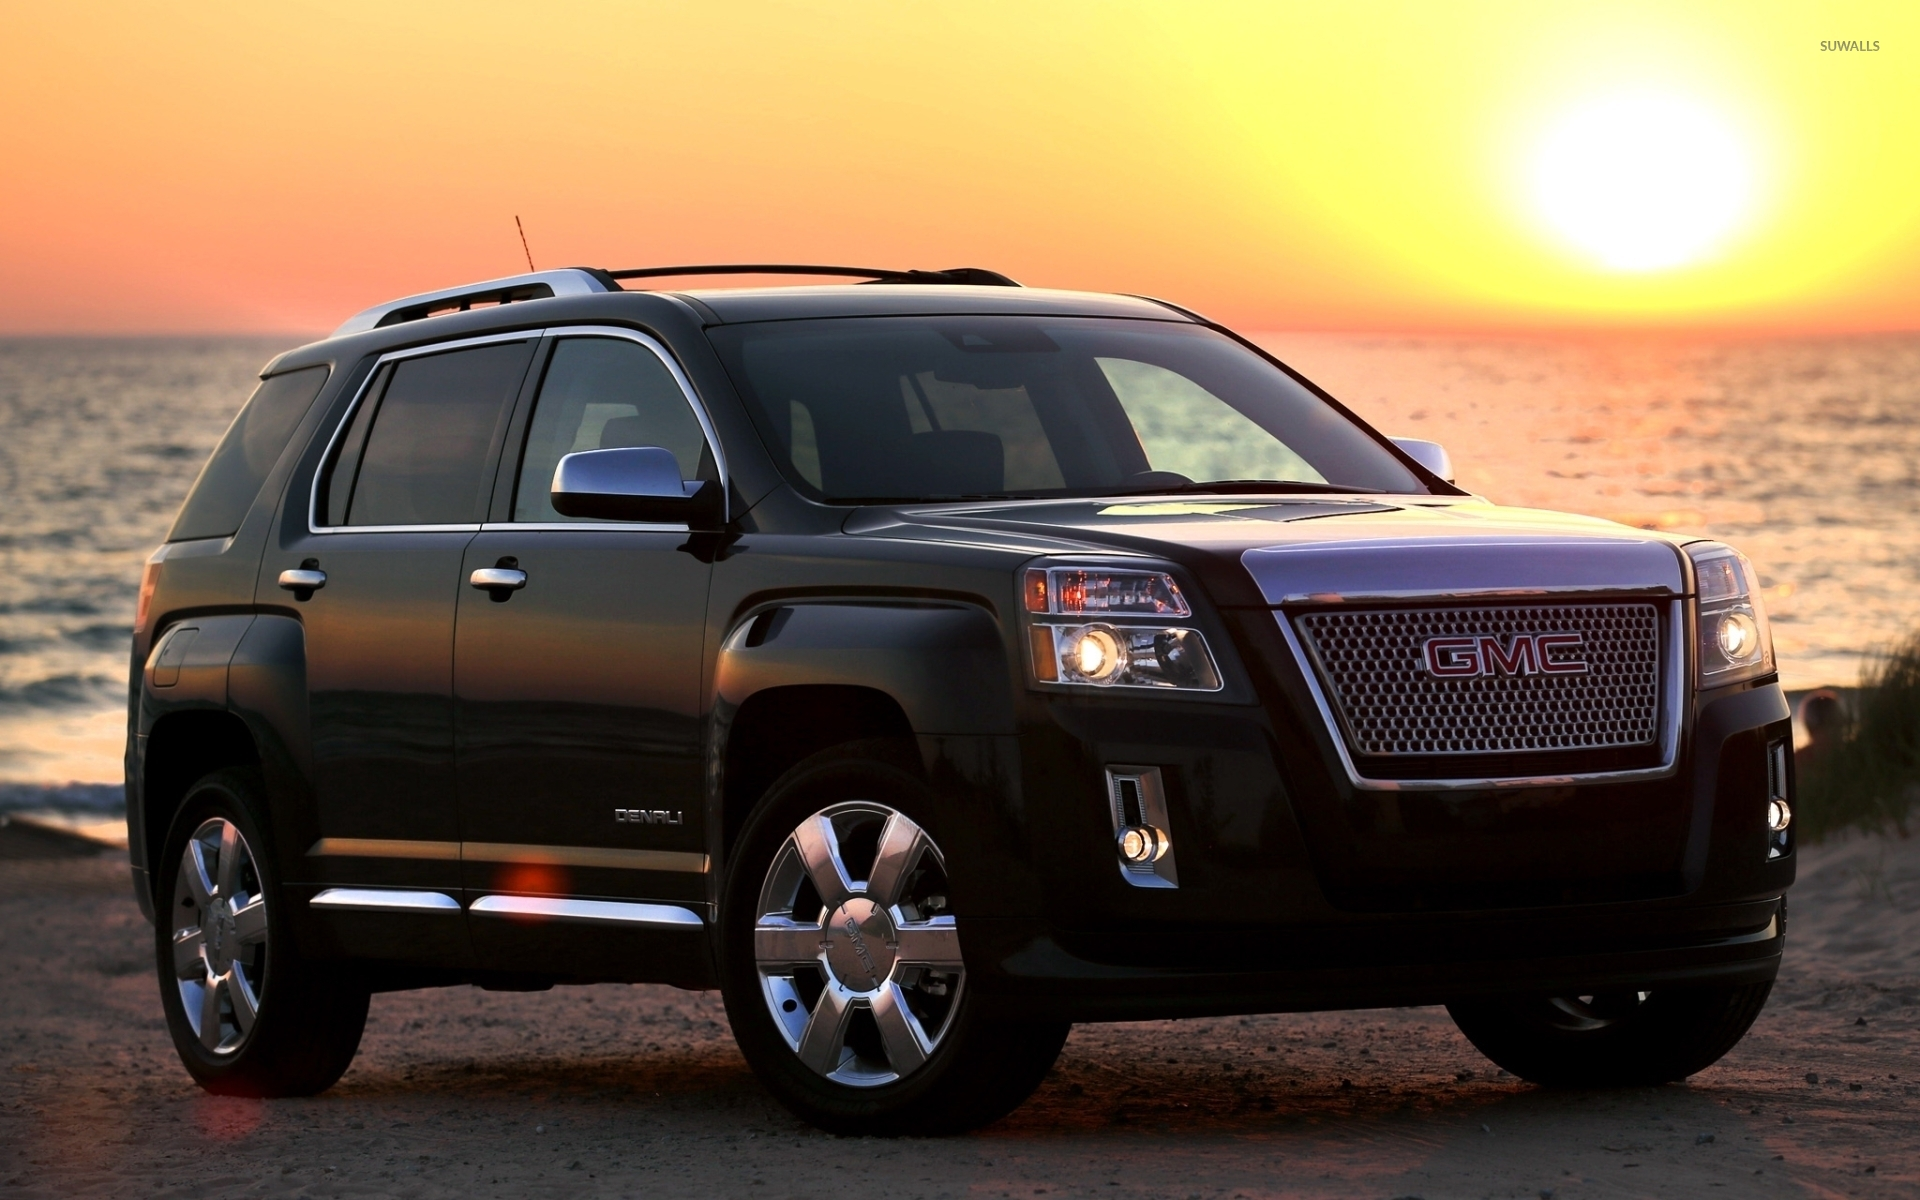 GMC Terrain Wallpaper